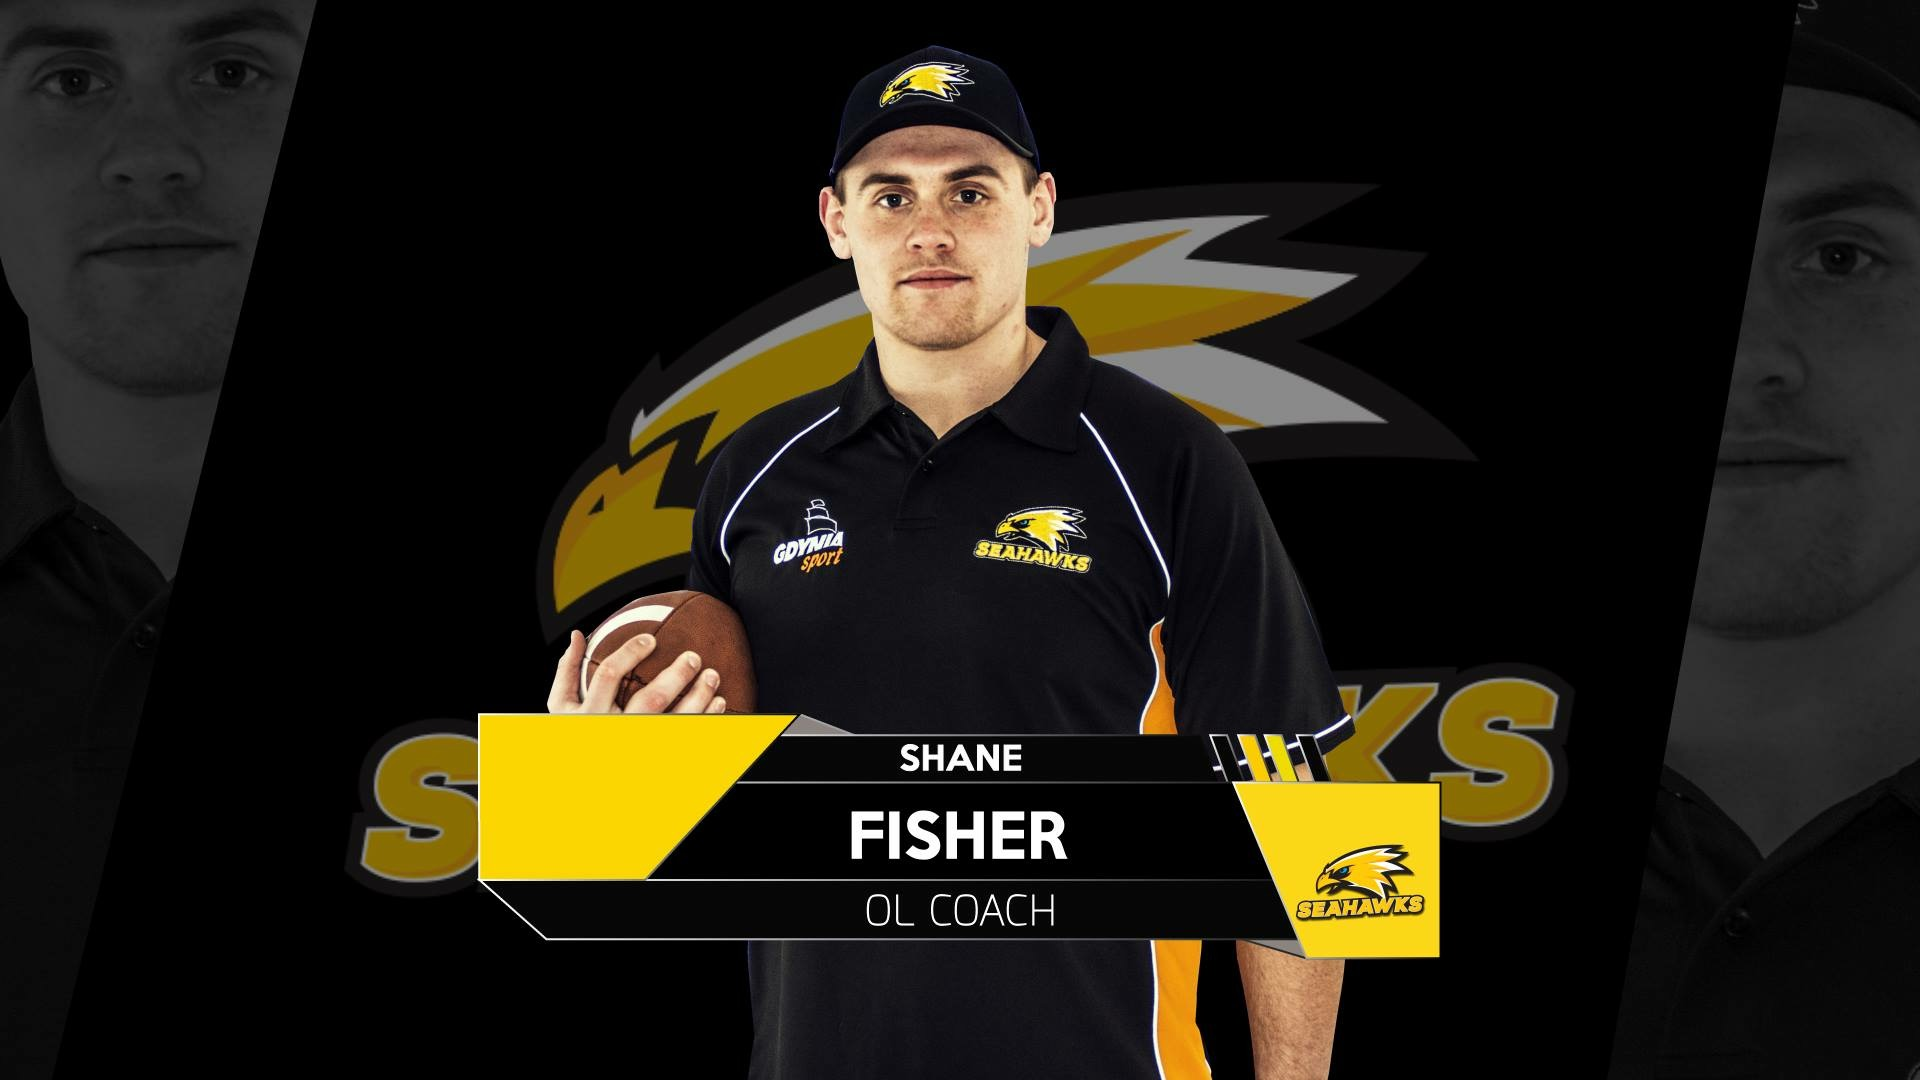 Shane Fisher